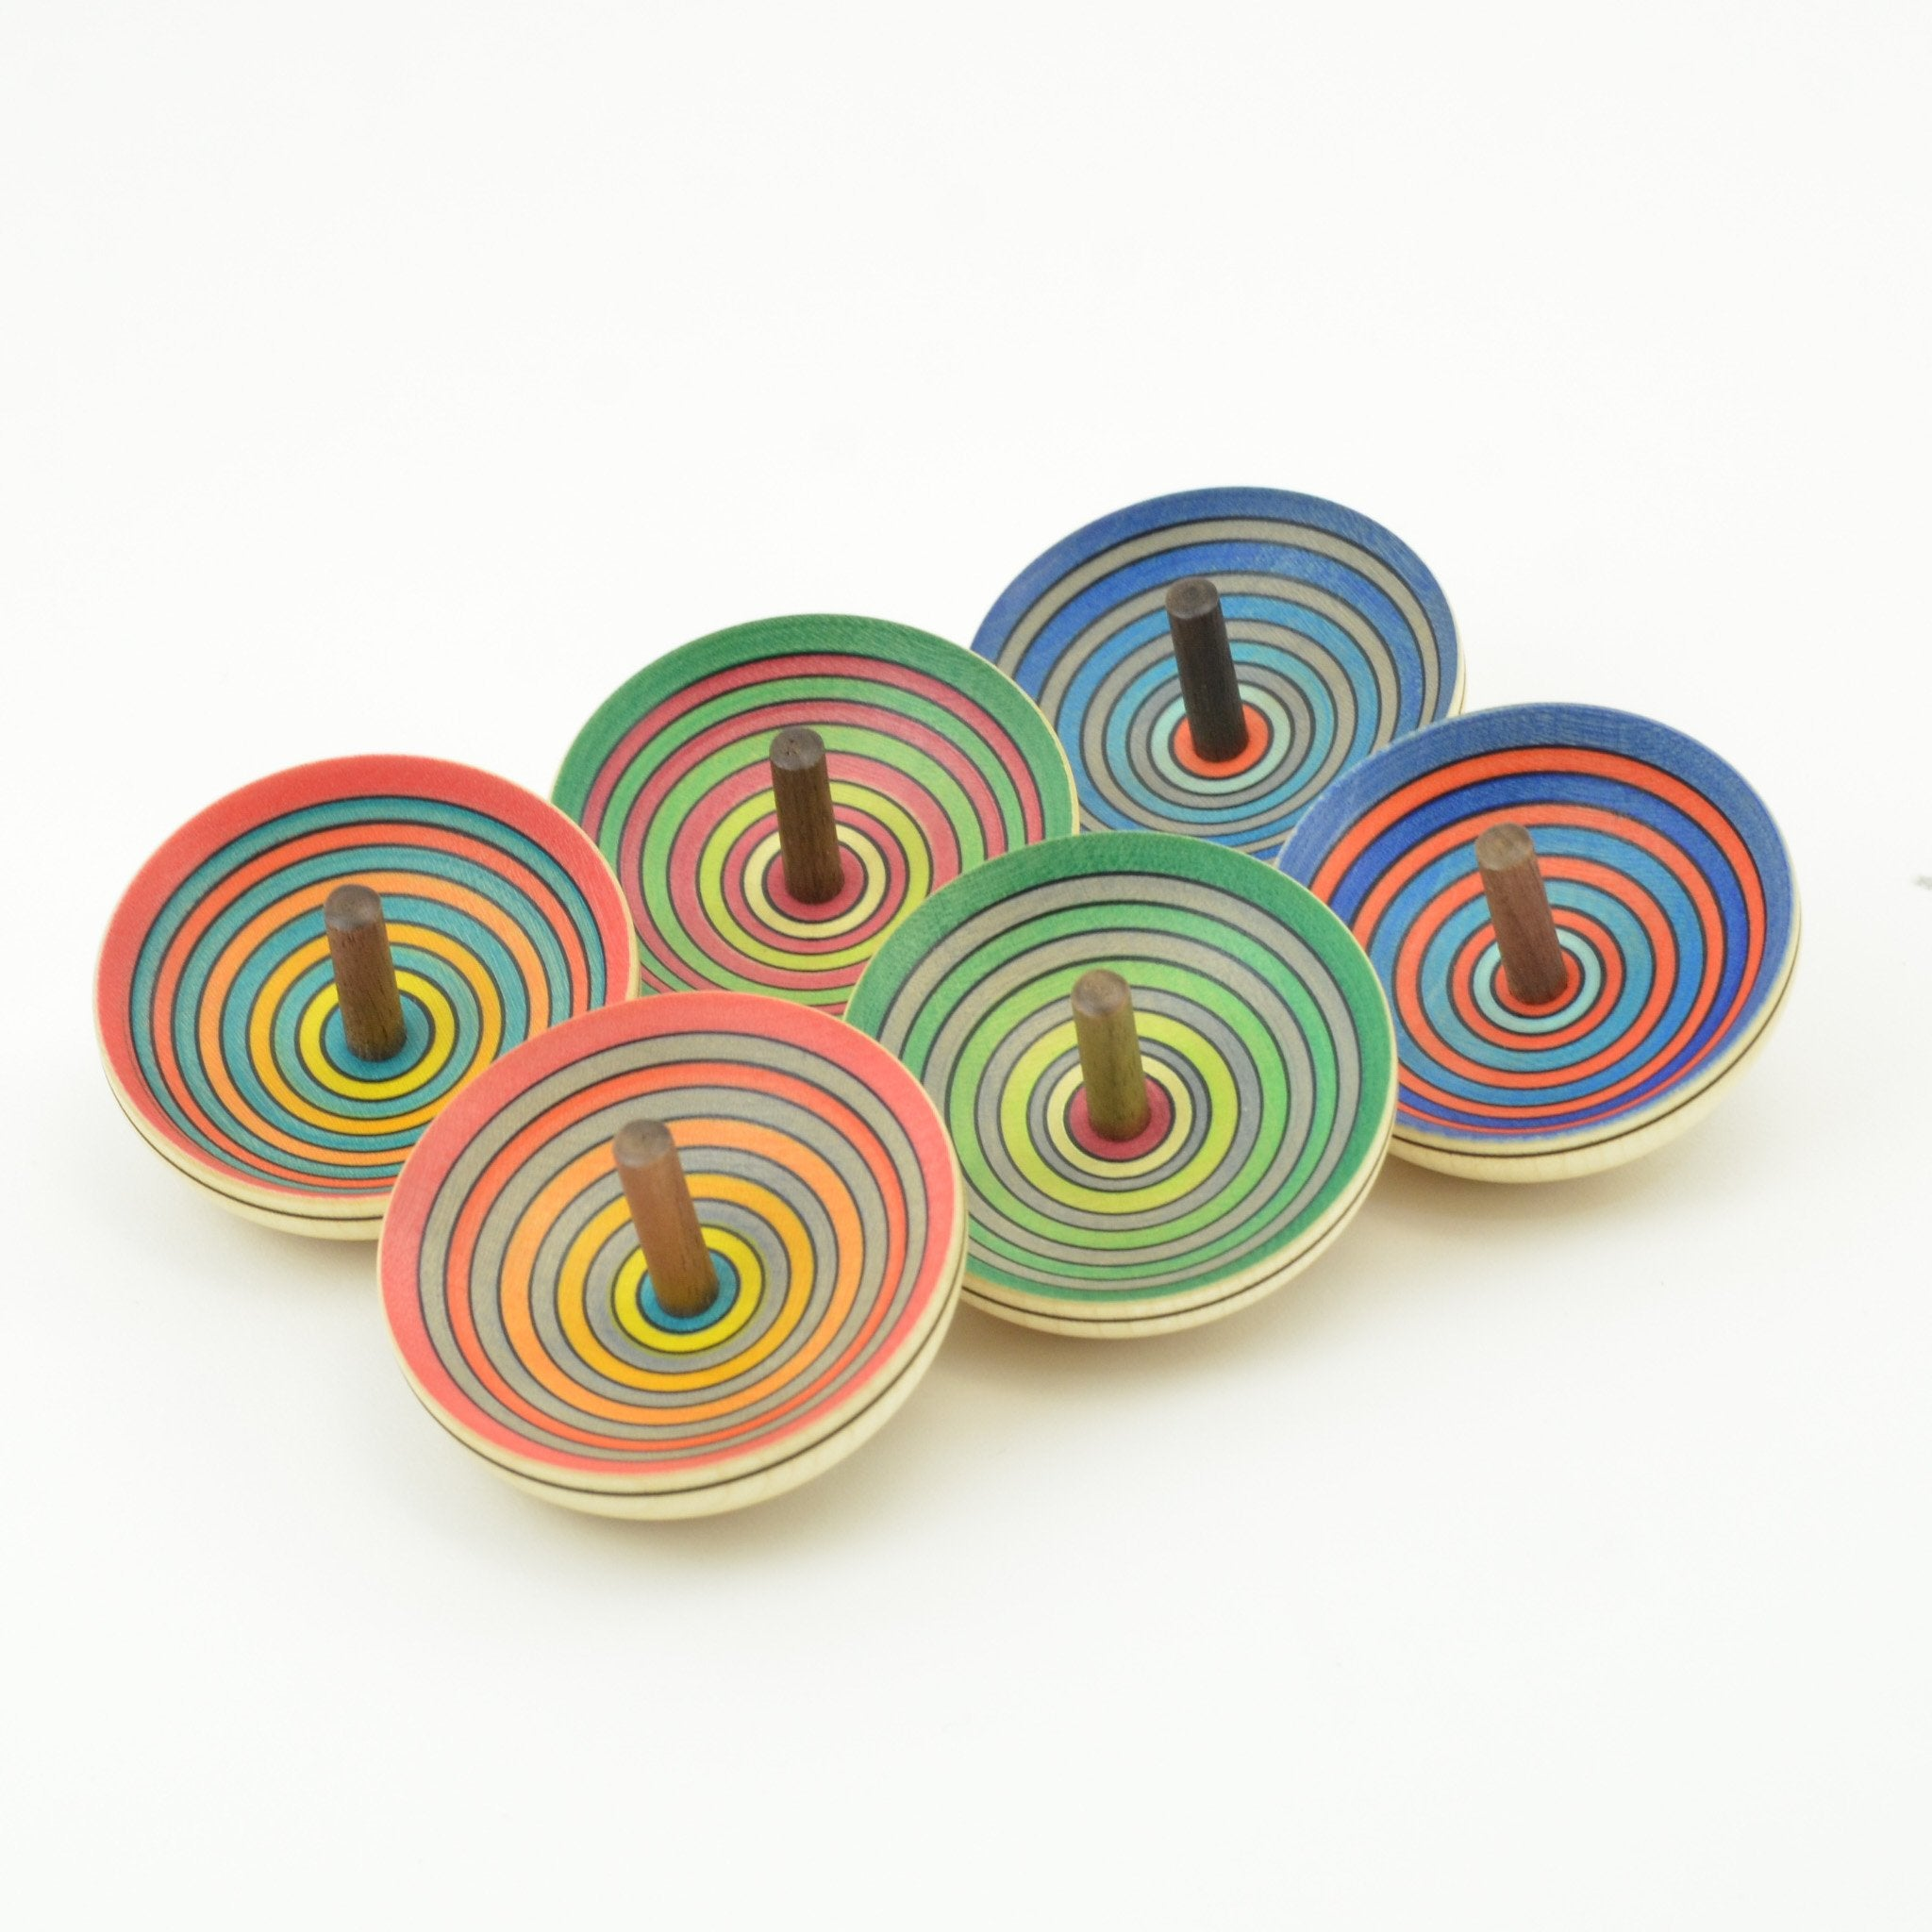 Mader - Fridolette Spinning Top